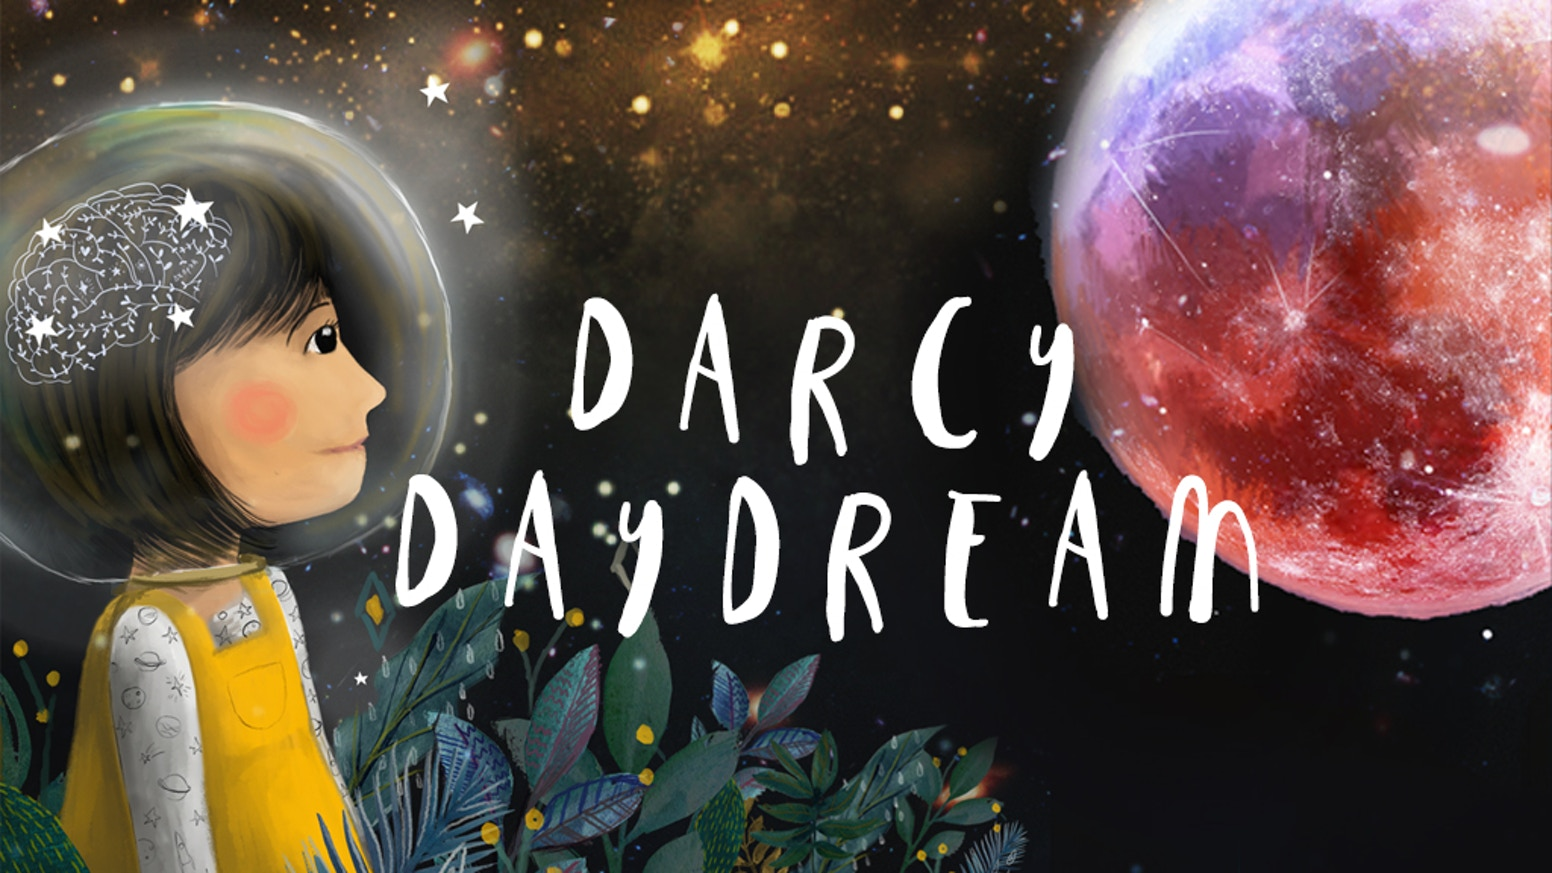 A dream-filled children's book in which a clever little girl first realises she is a small piece of stardust in an infinite universe.